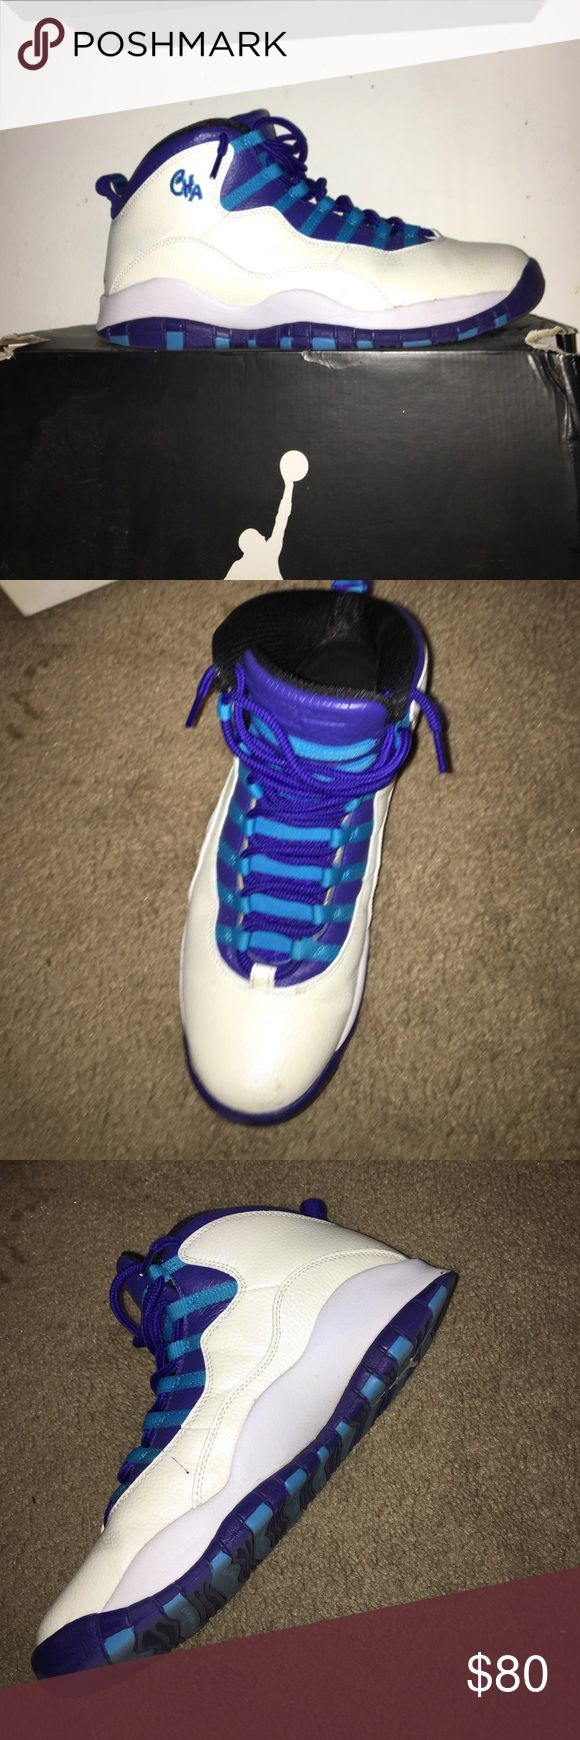 jordan 10 charlotte hornets It's a very great shoe great to wear at basketball games Jordan Shoes Sneakers